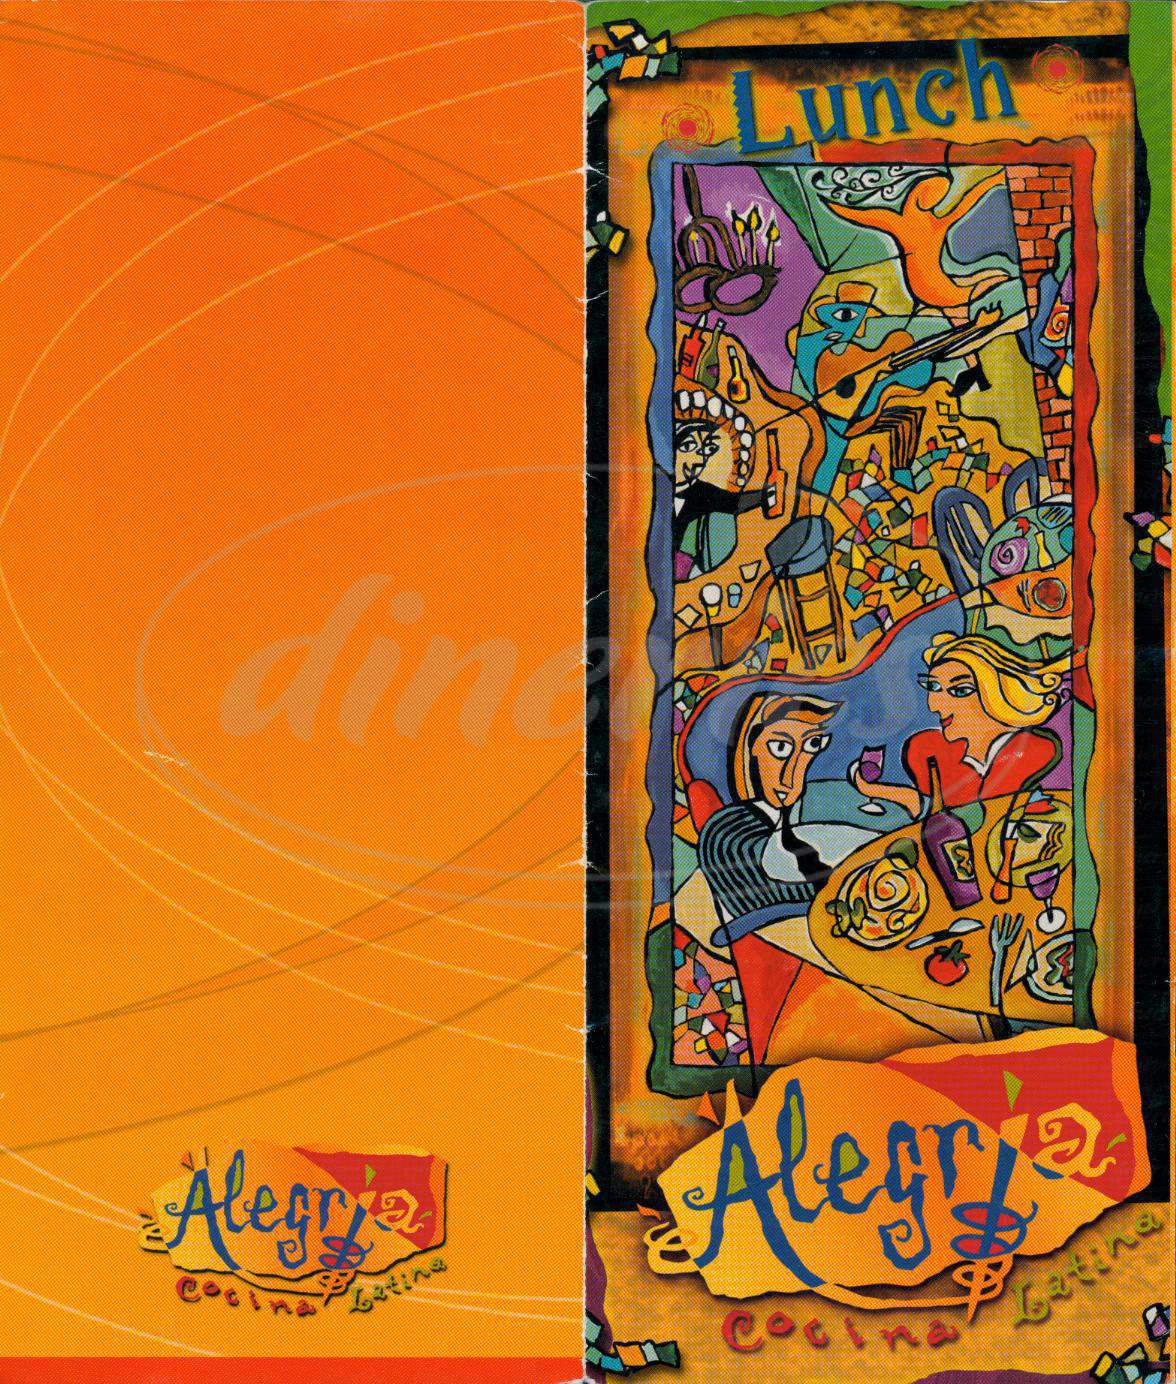 menu for Alegria Cocina Latina